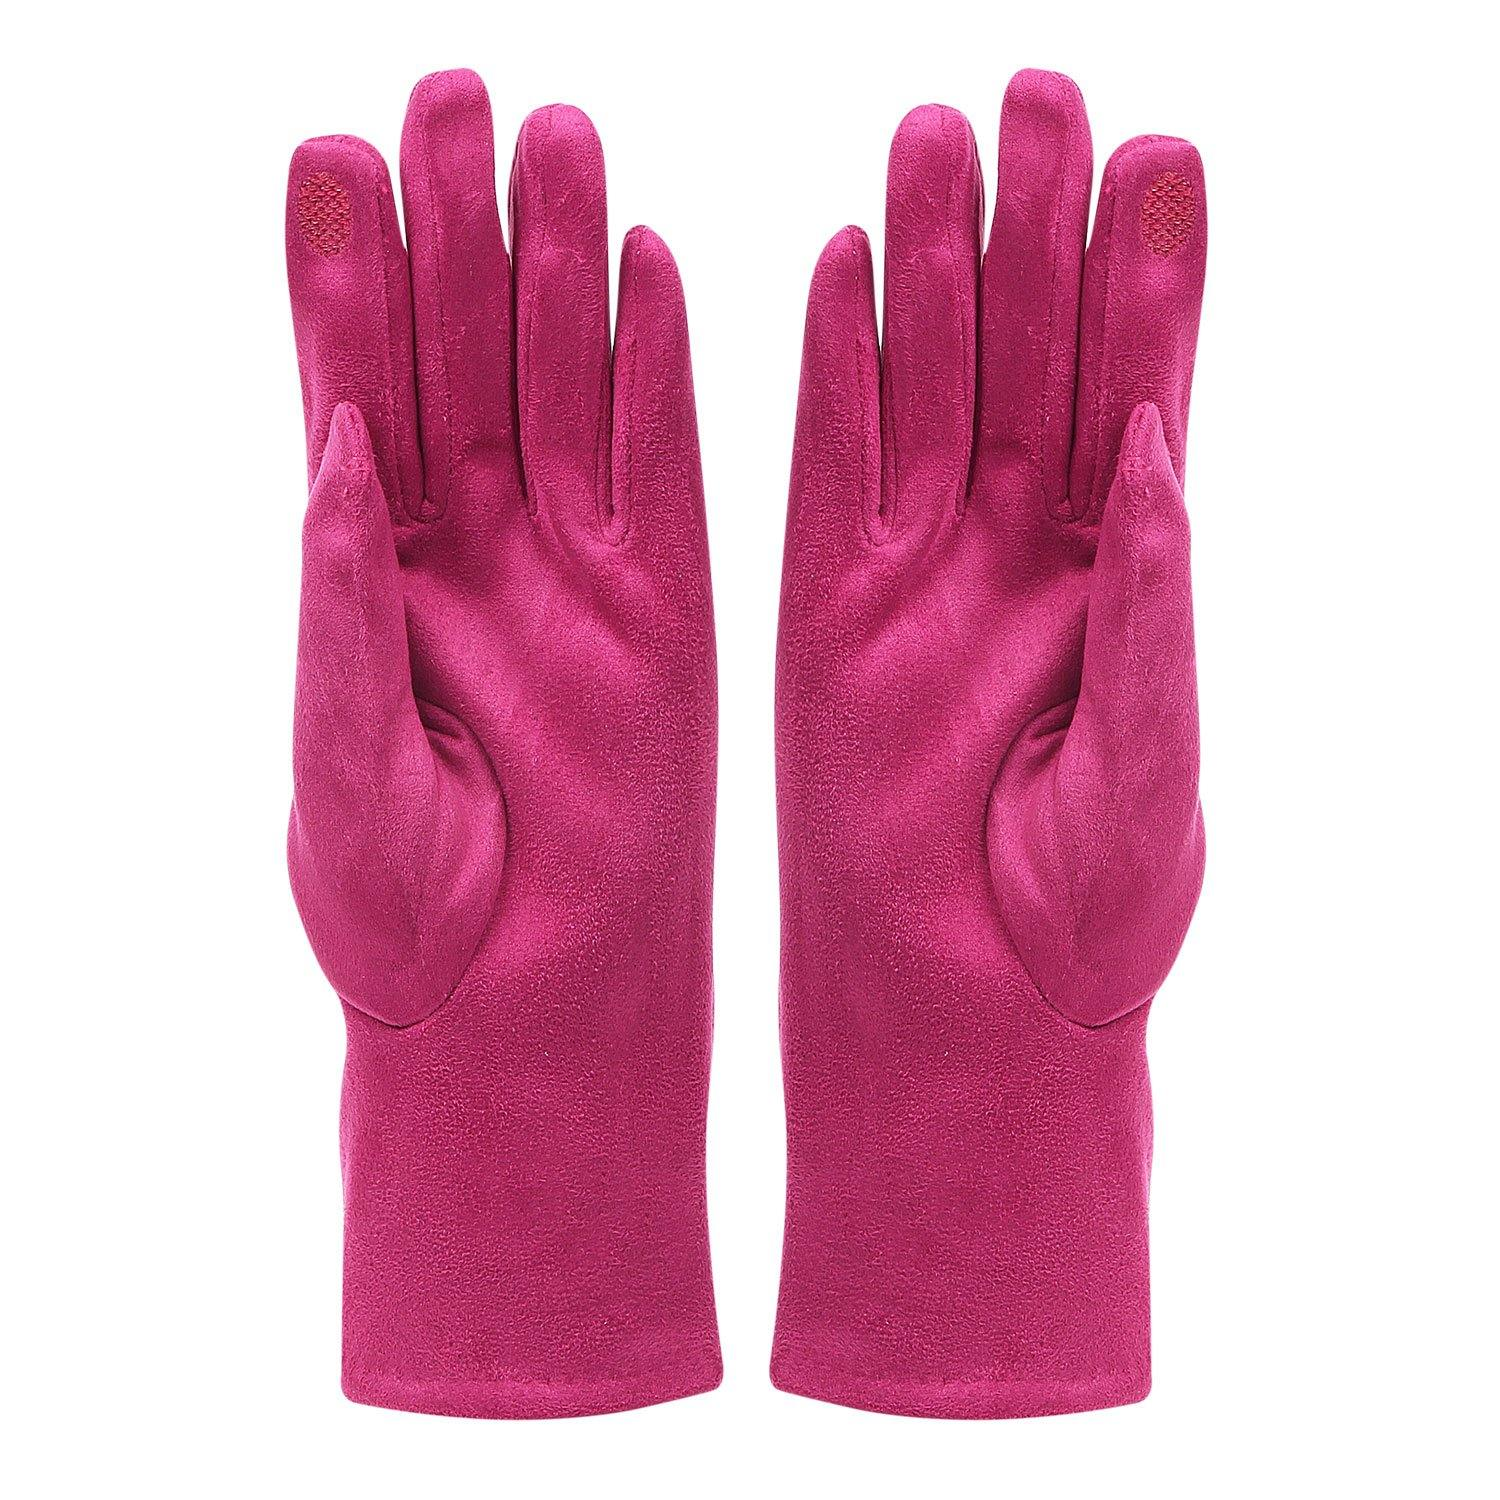 Fashionable Bow Pattern Winter Gloves for Women- Fuchsia